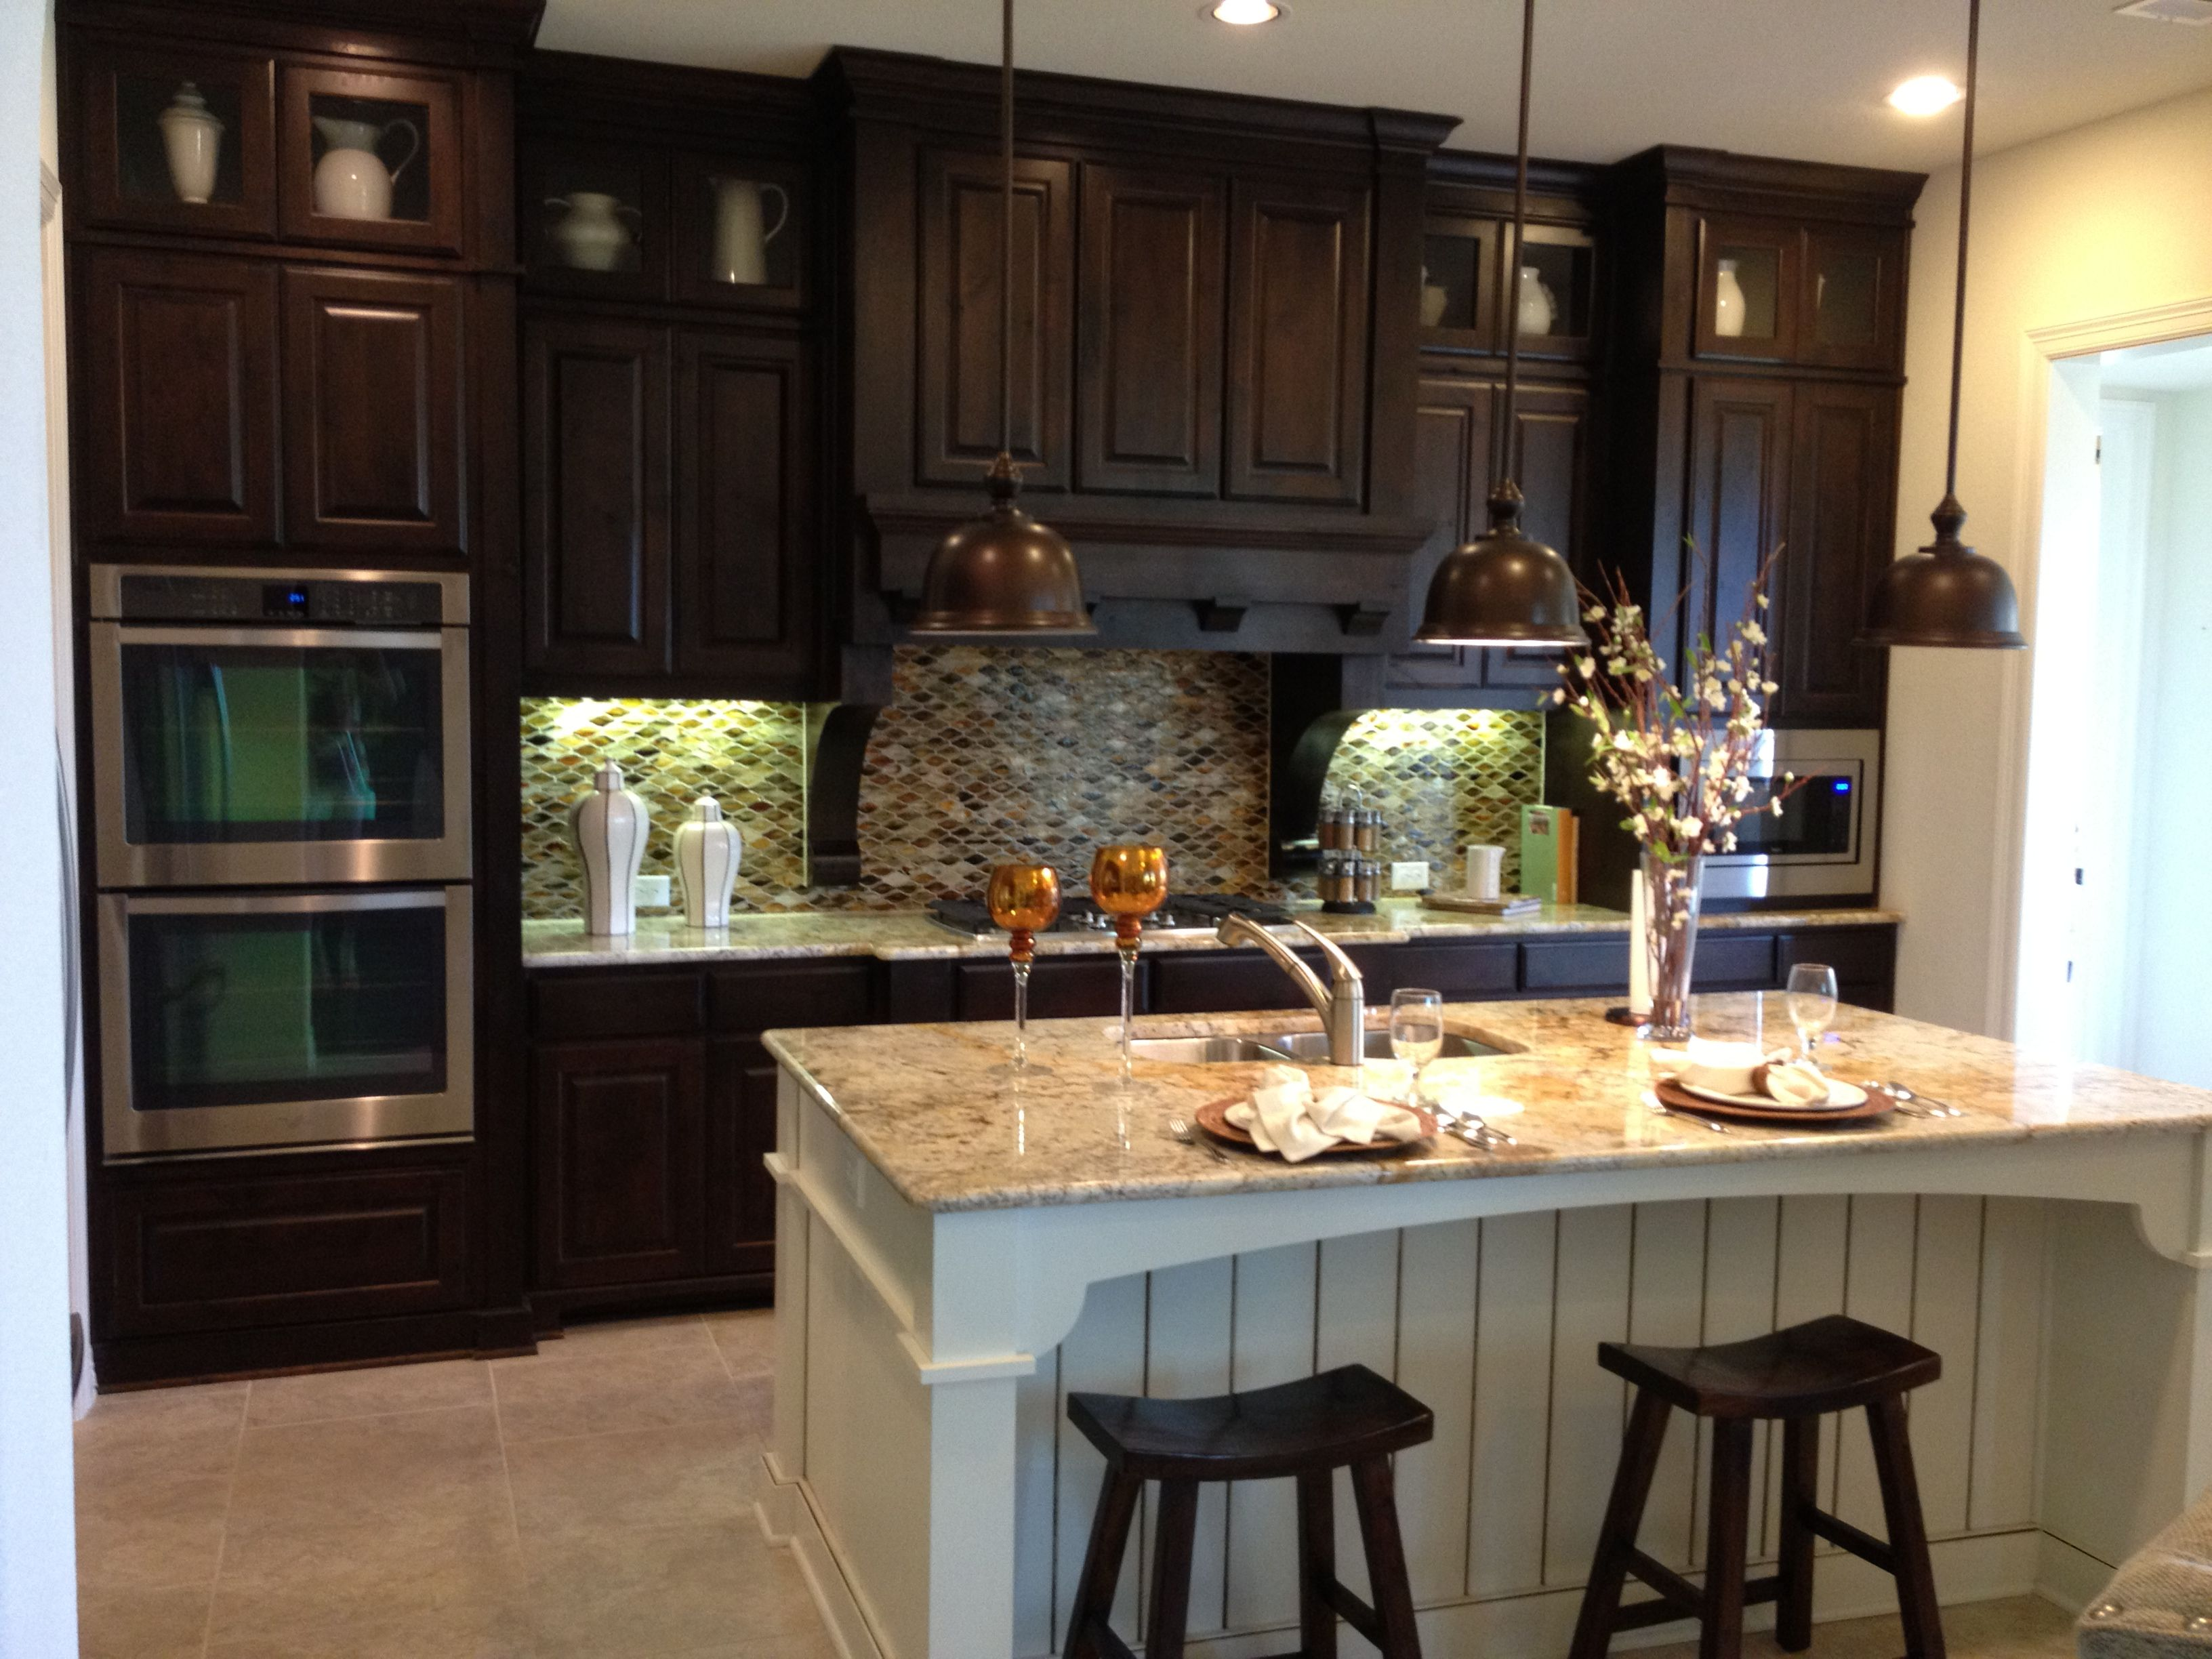 Knotty Alder Cabinets paired with an antiqued White Maple Island